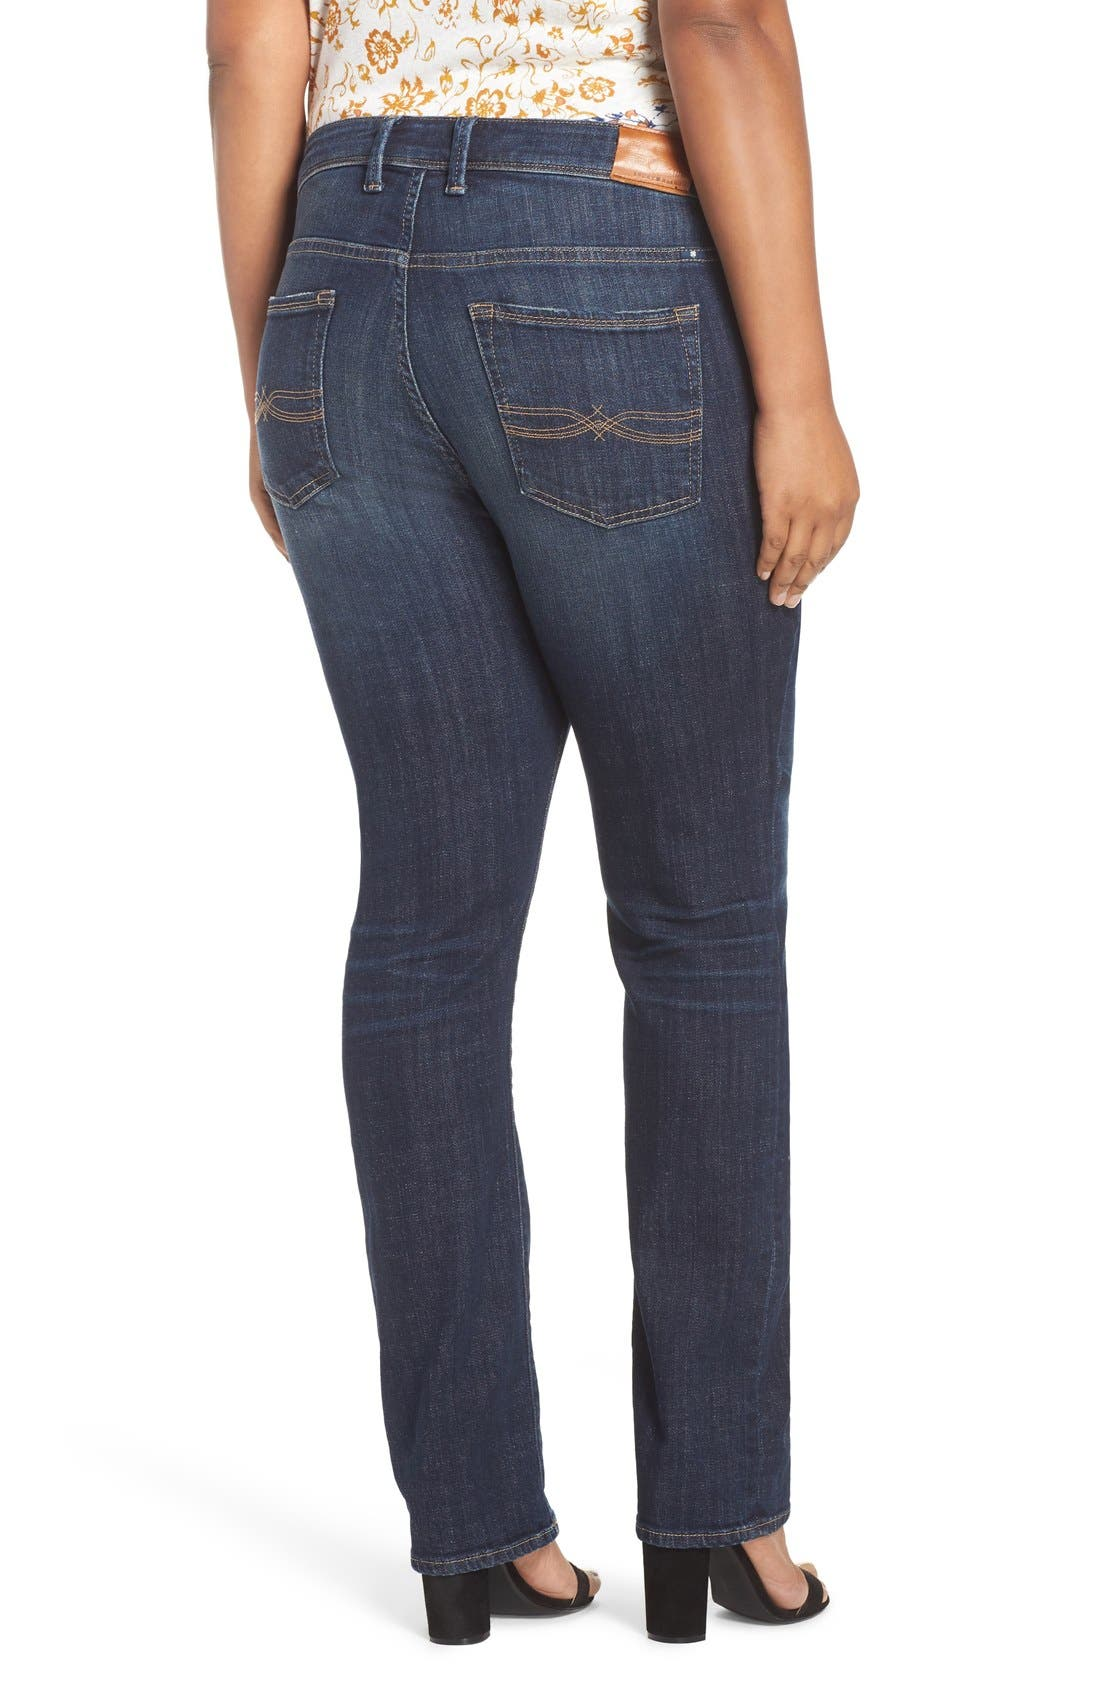 'Reese' Ripped Boyfriend Jeans,                             Alternate thumbnail 4, color,                             410